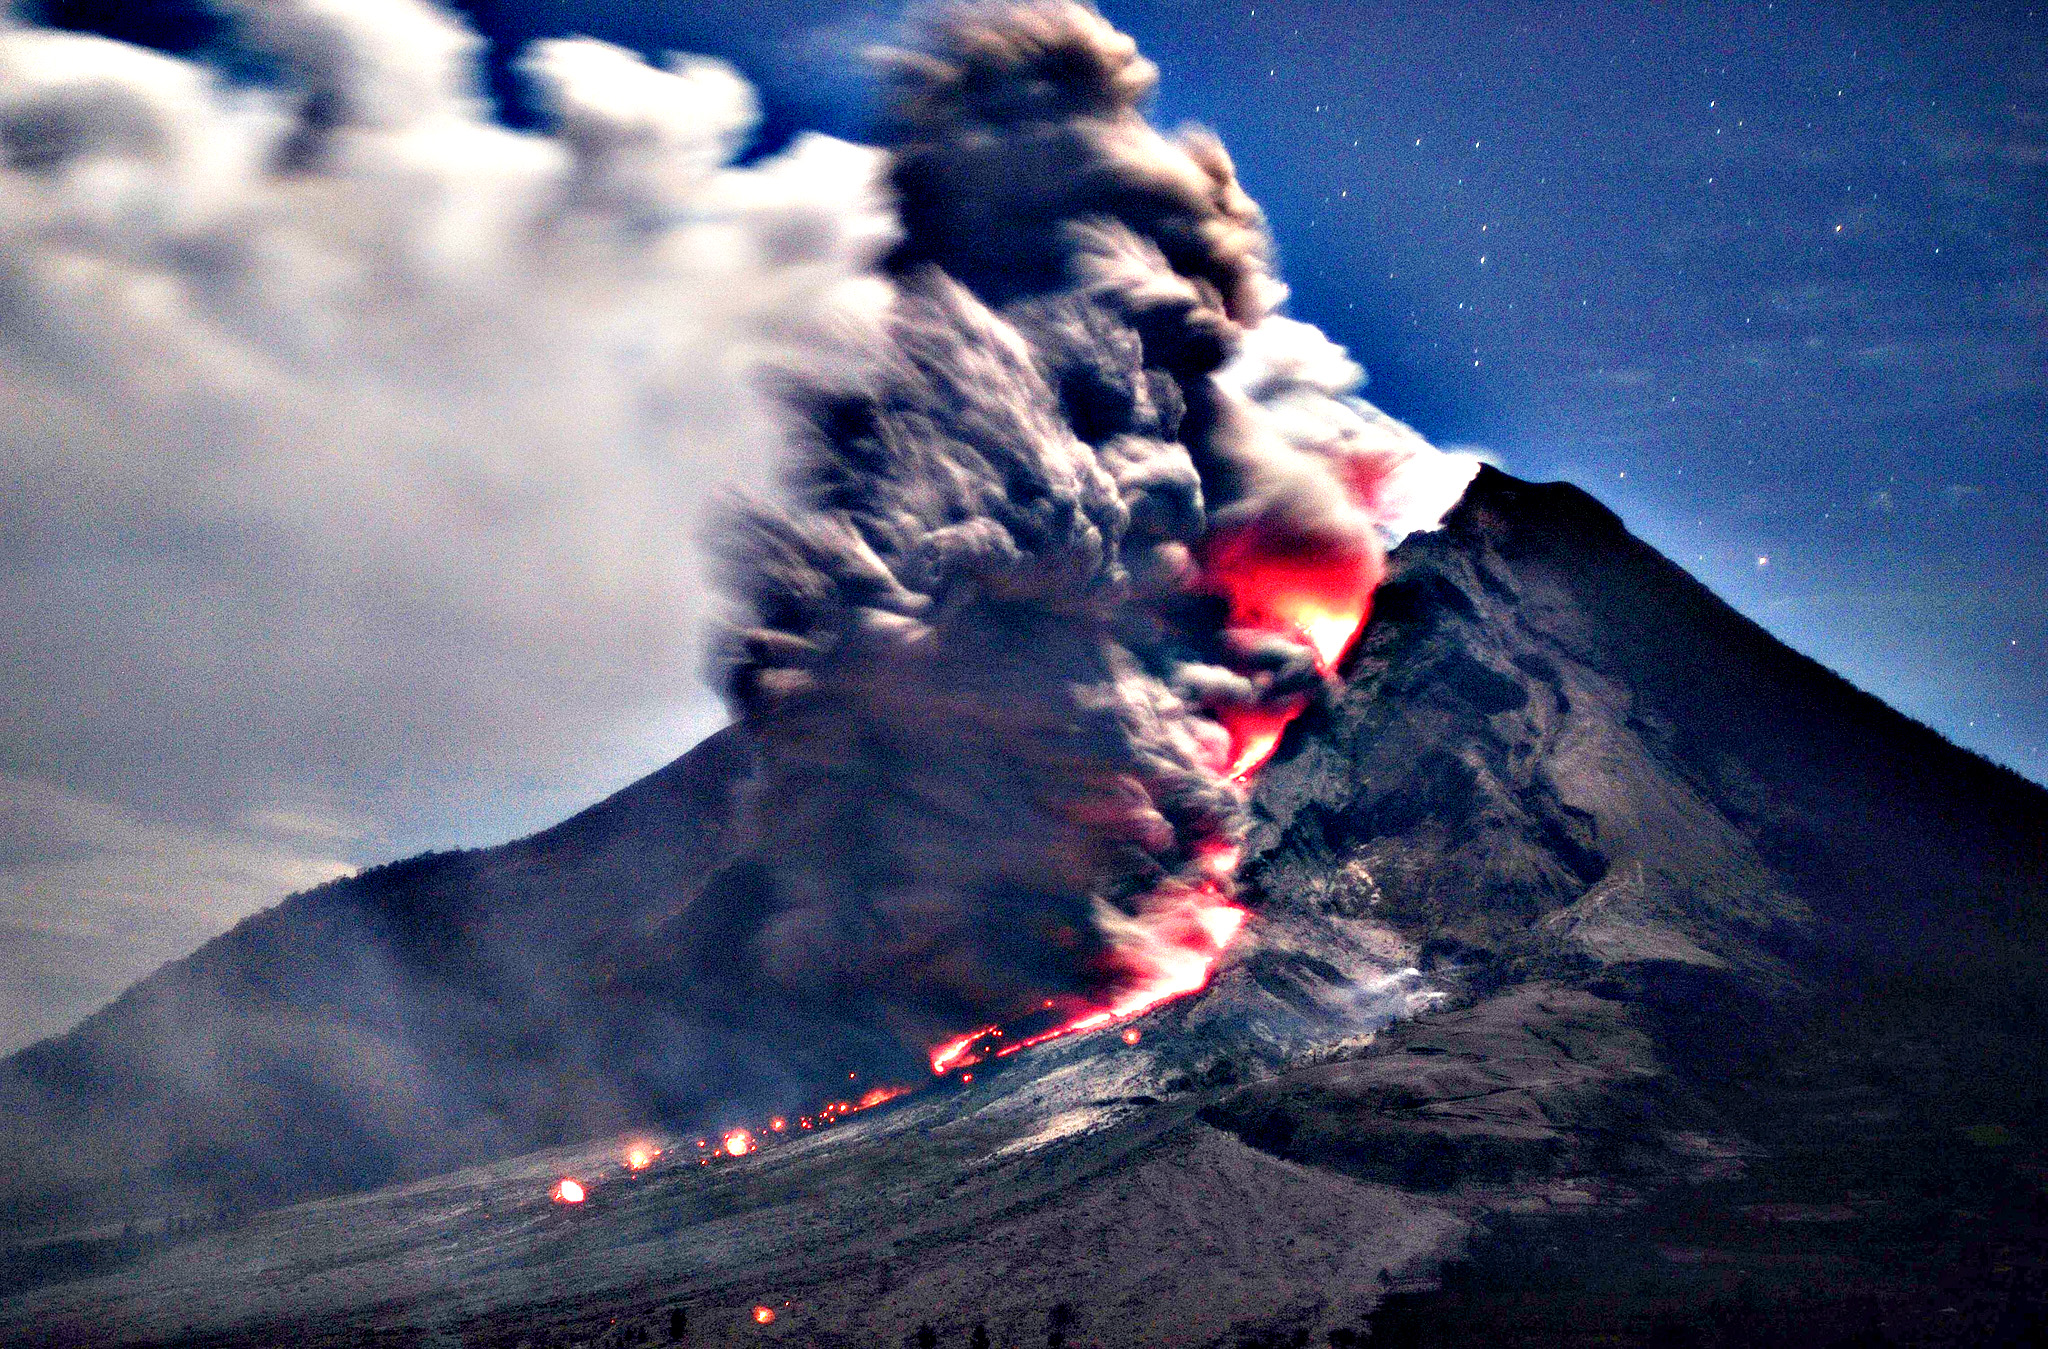 Sinabung volcano spews hot ash and lava in Karo on January 14, 2014.